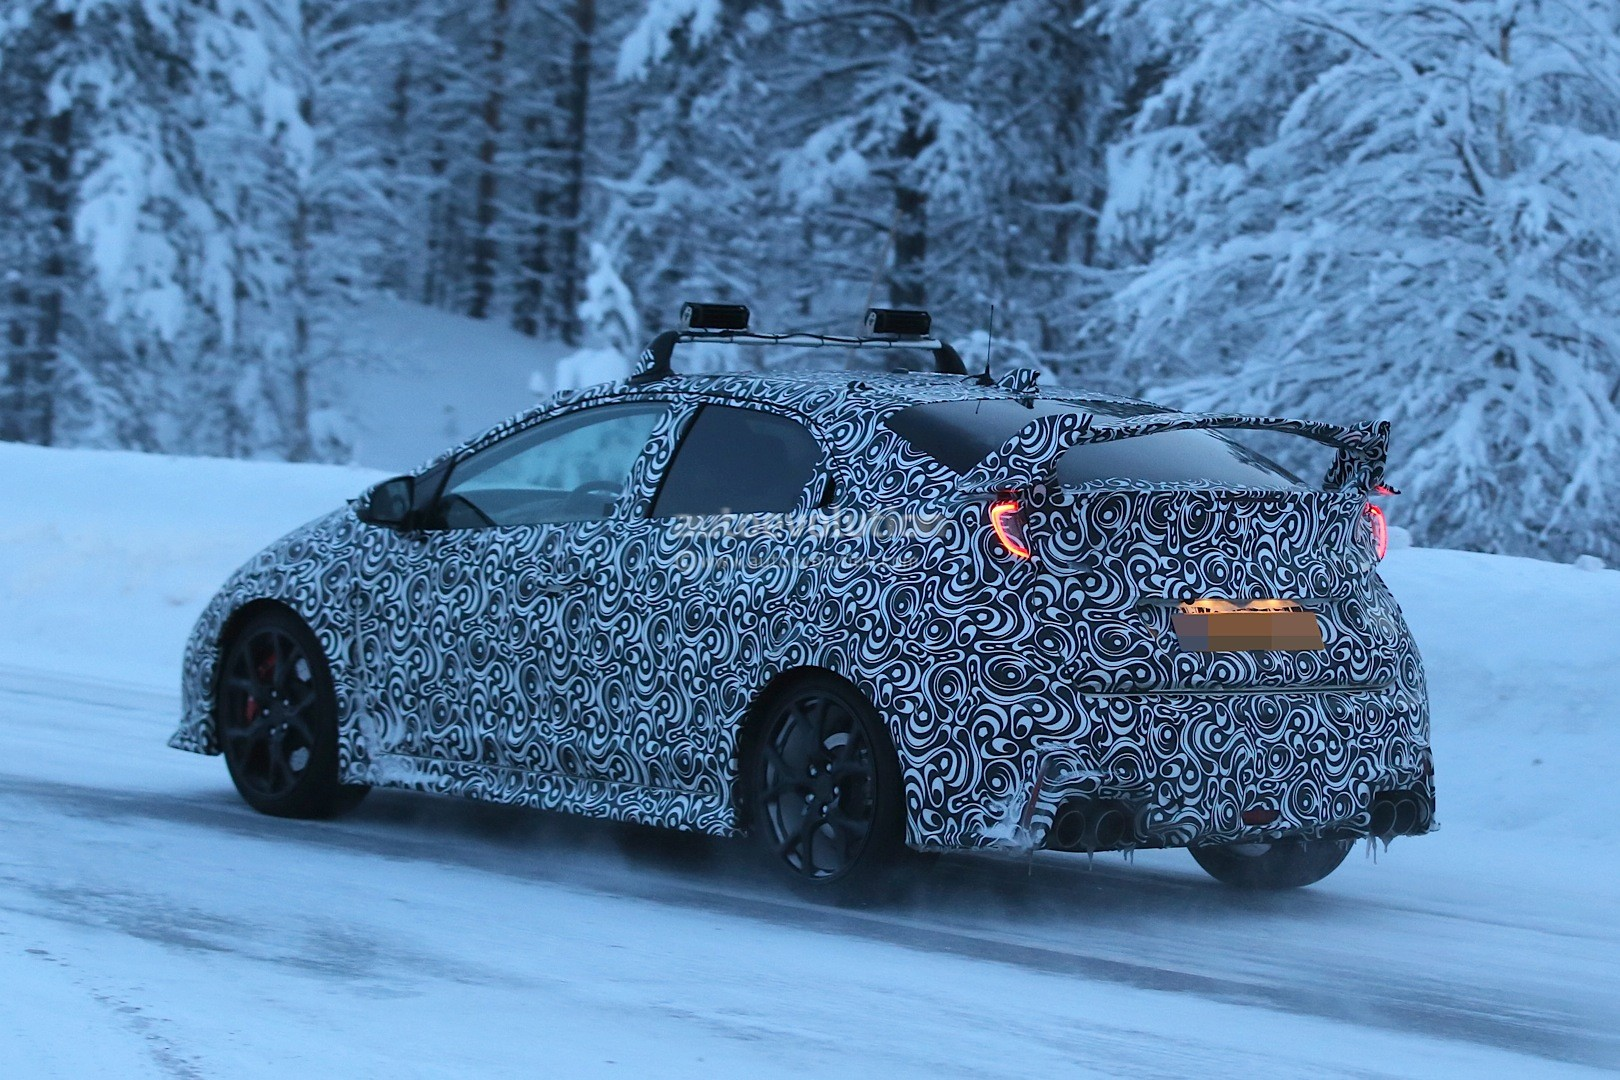 2015-honda-civic-type-r-winter-spy-photos-are-awesome-photo-gallery_13